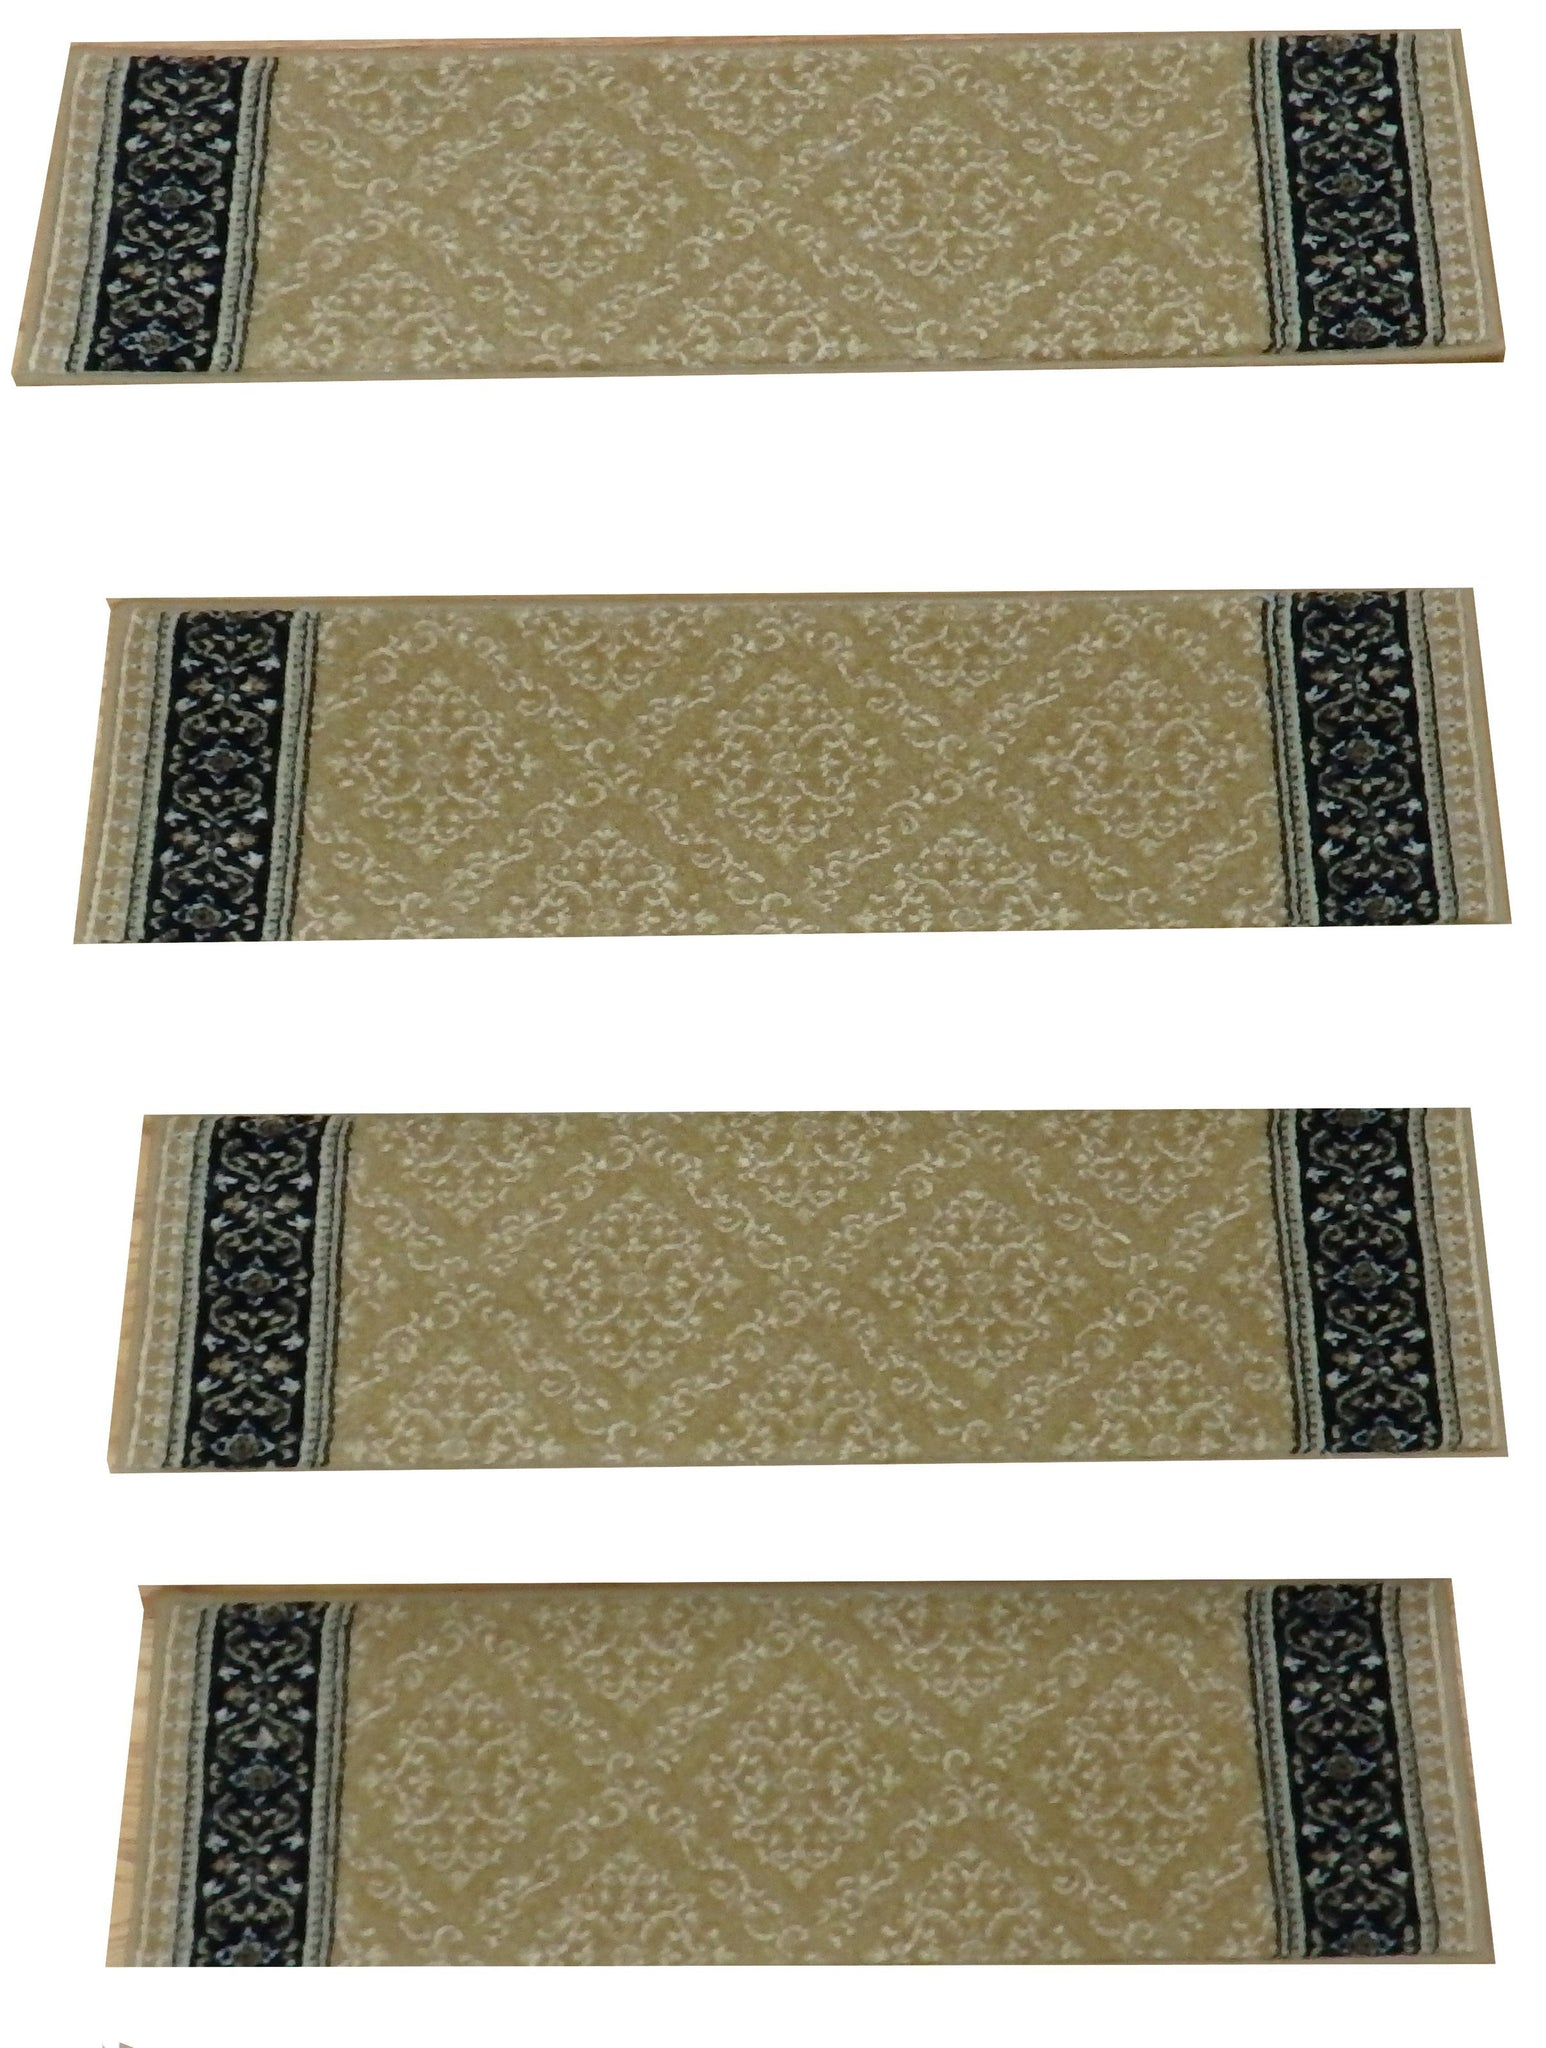 StairTreadsUSA Stair Treads Stair Treads Gold-Black 31in x 9in Wool Set Of 14 Non Slip Pads Attached